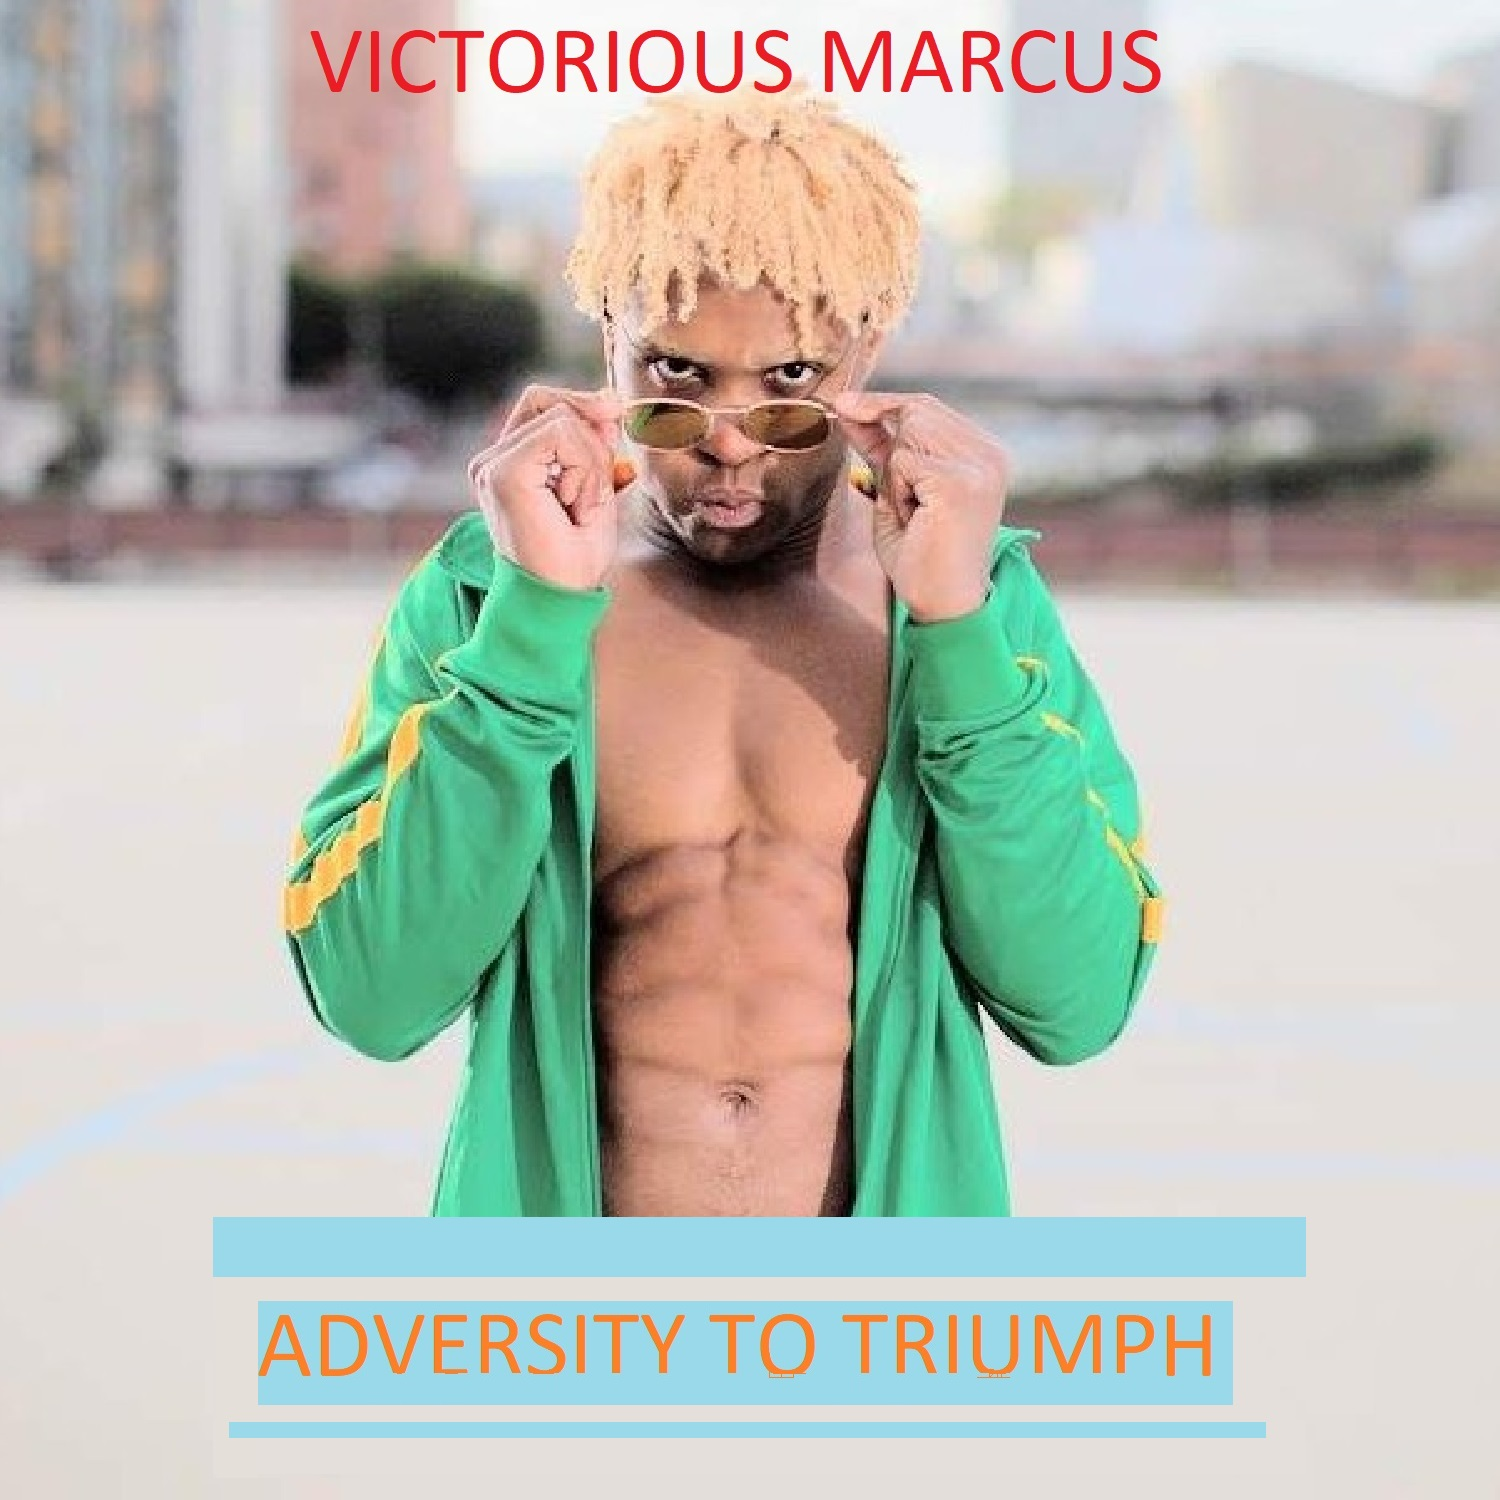 Victorious Marcus Presents New EP \'Adversity To Triumph\' With Universal Music Group